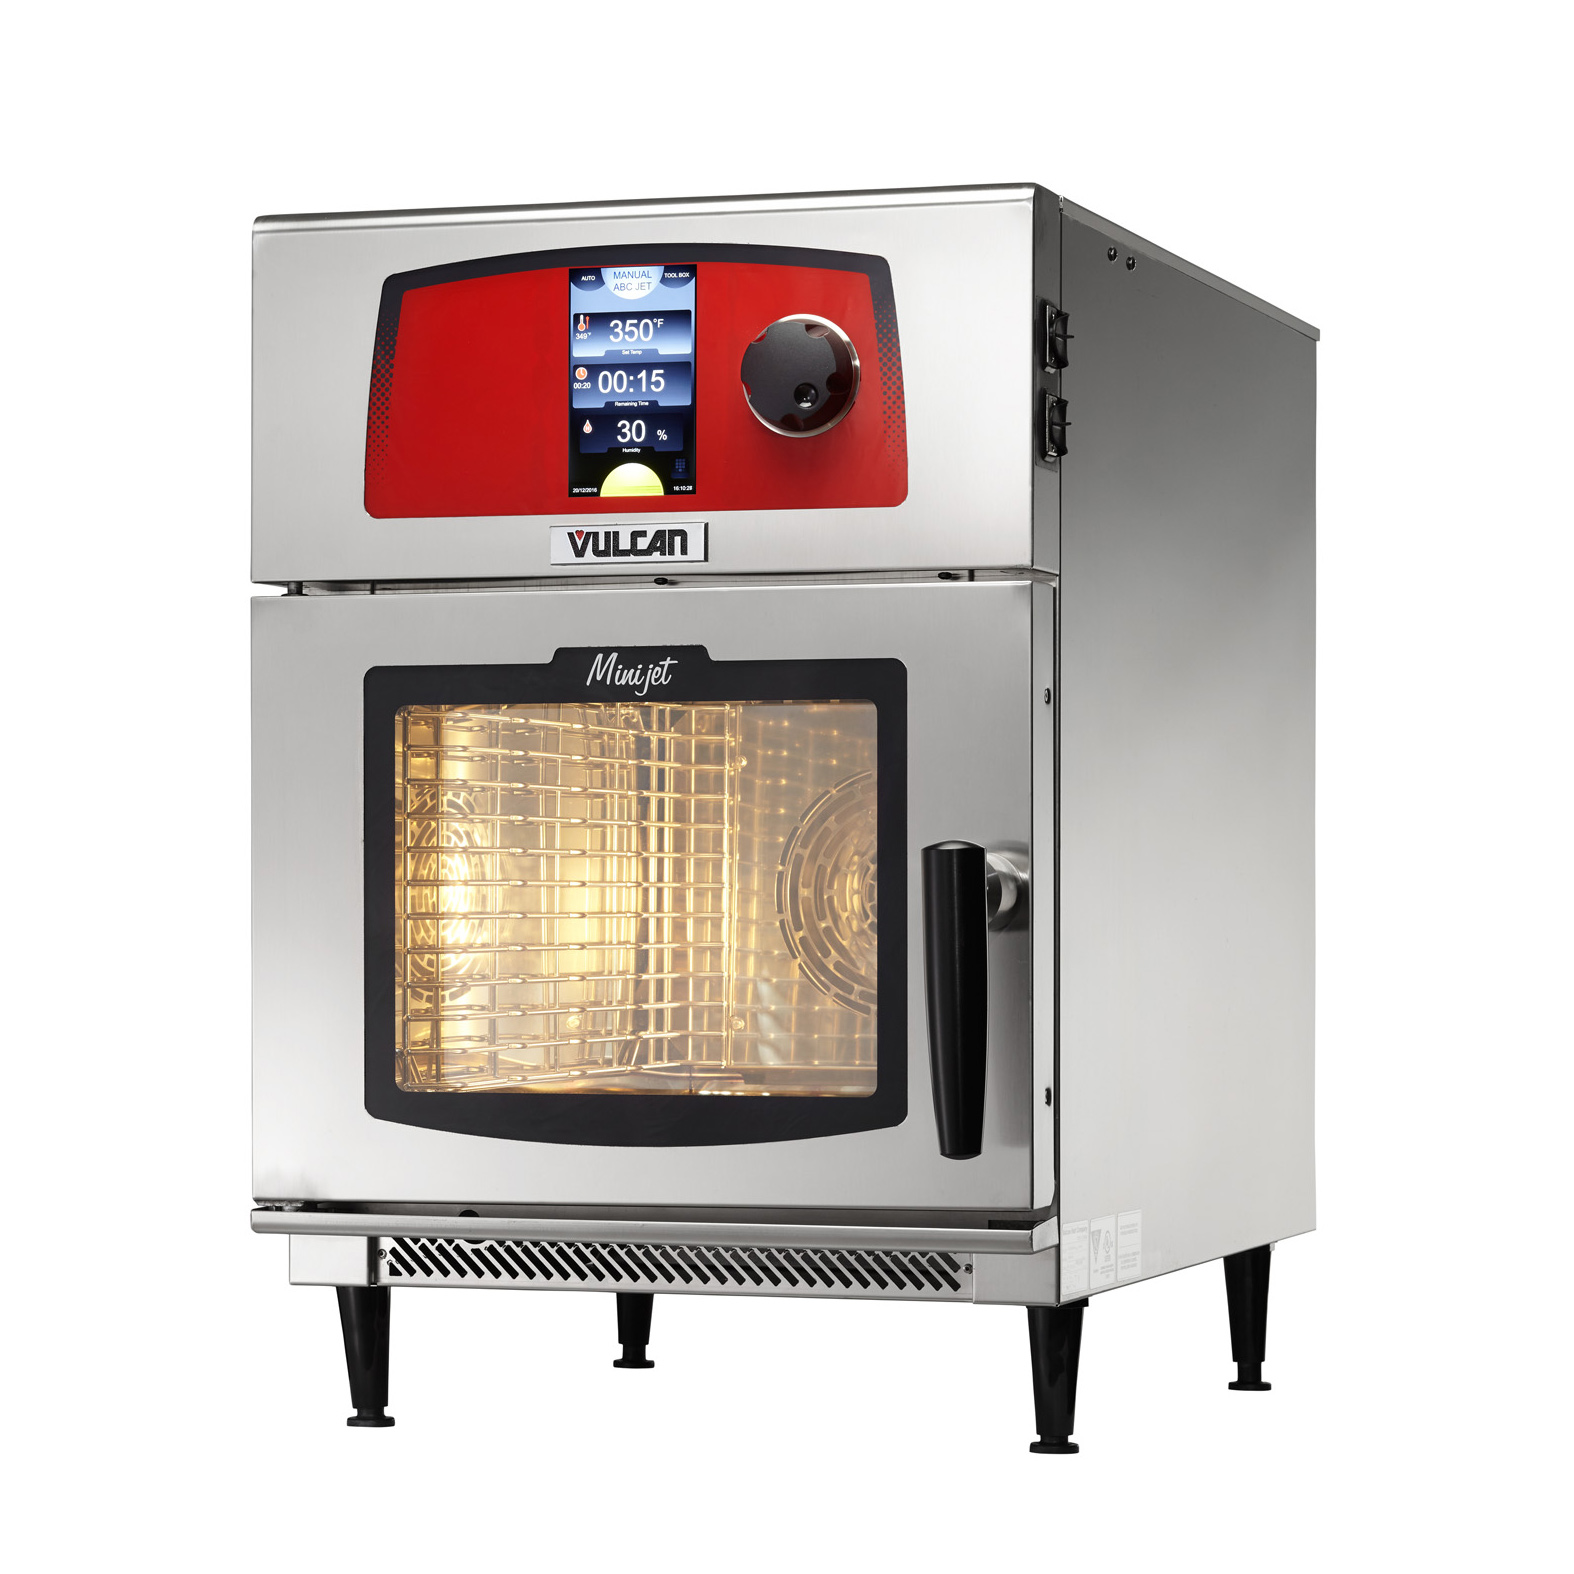 Vulcan MINI-JET combi oven, electric